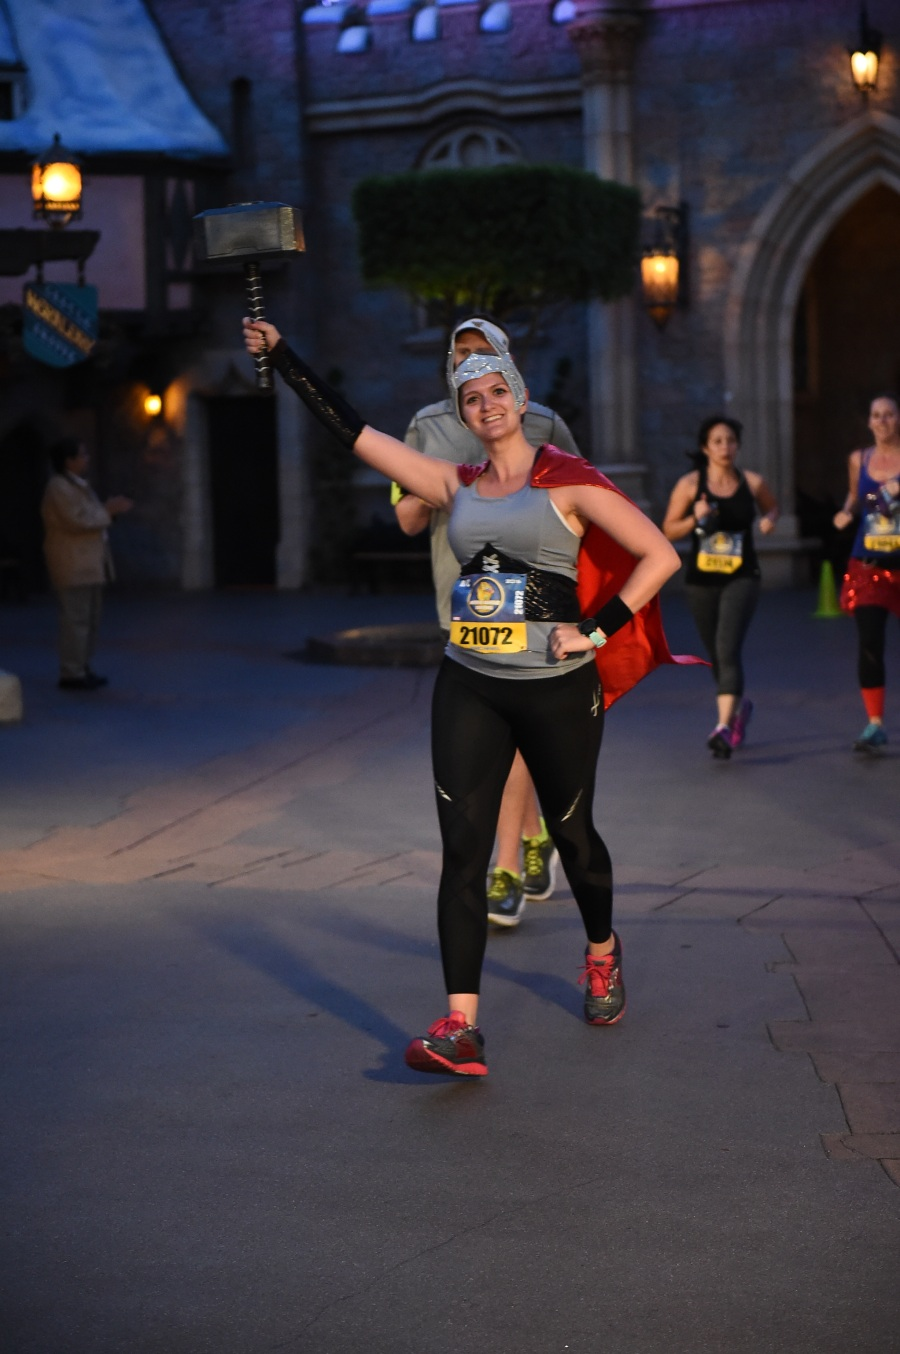 rundisney_dlrmaraaction15_20161113_7860815475